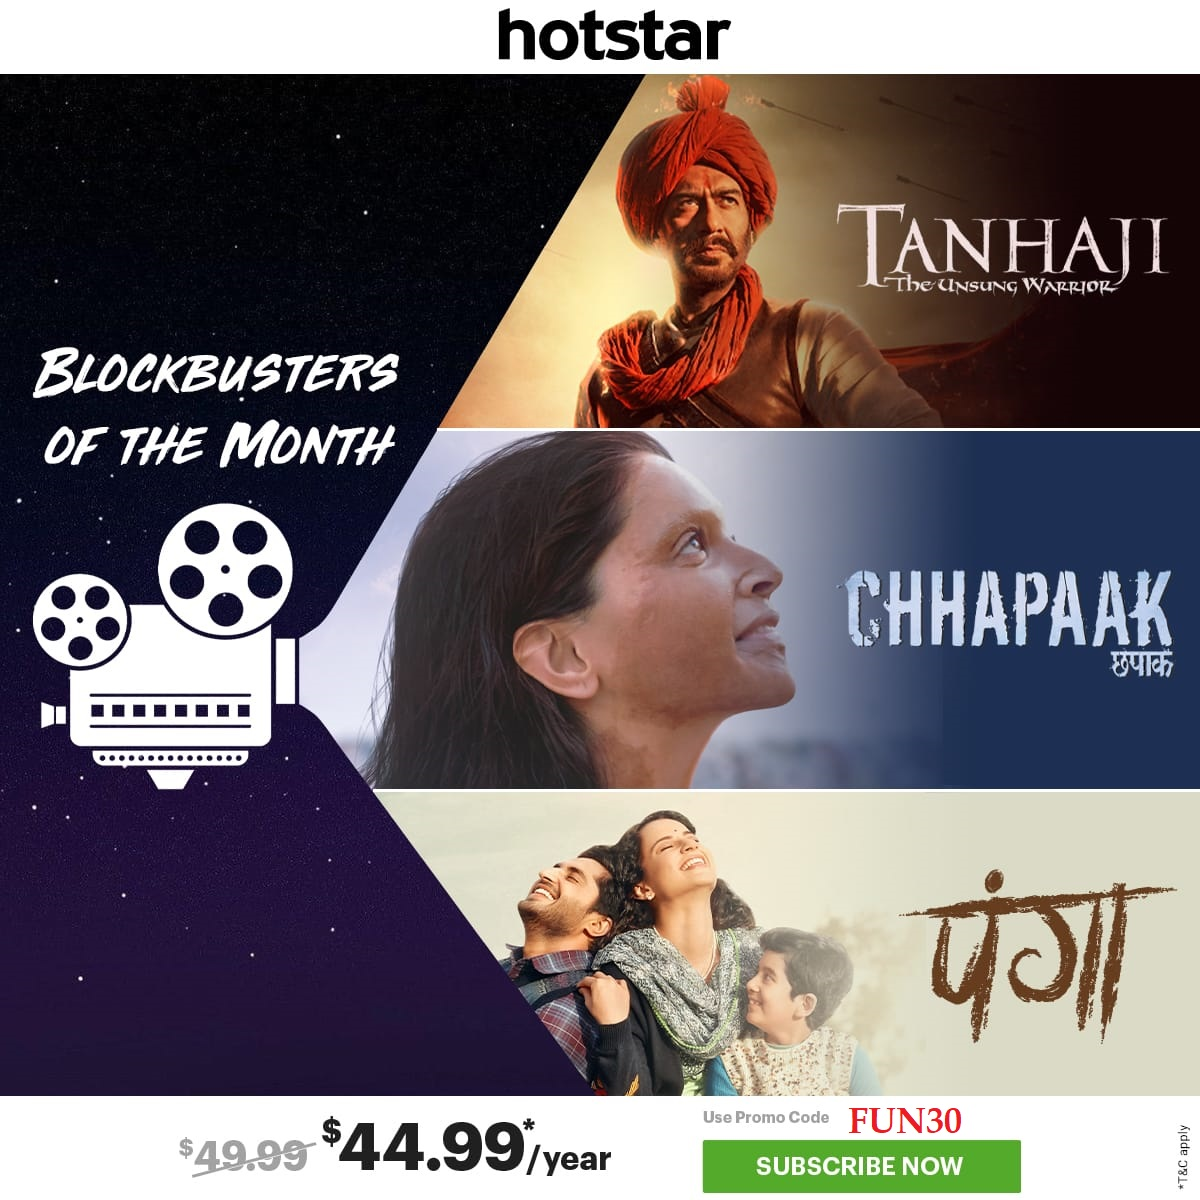 Hotstar March Blockbusters